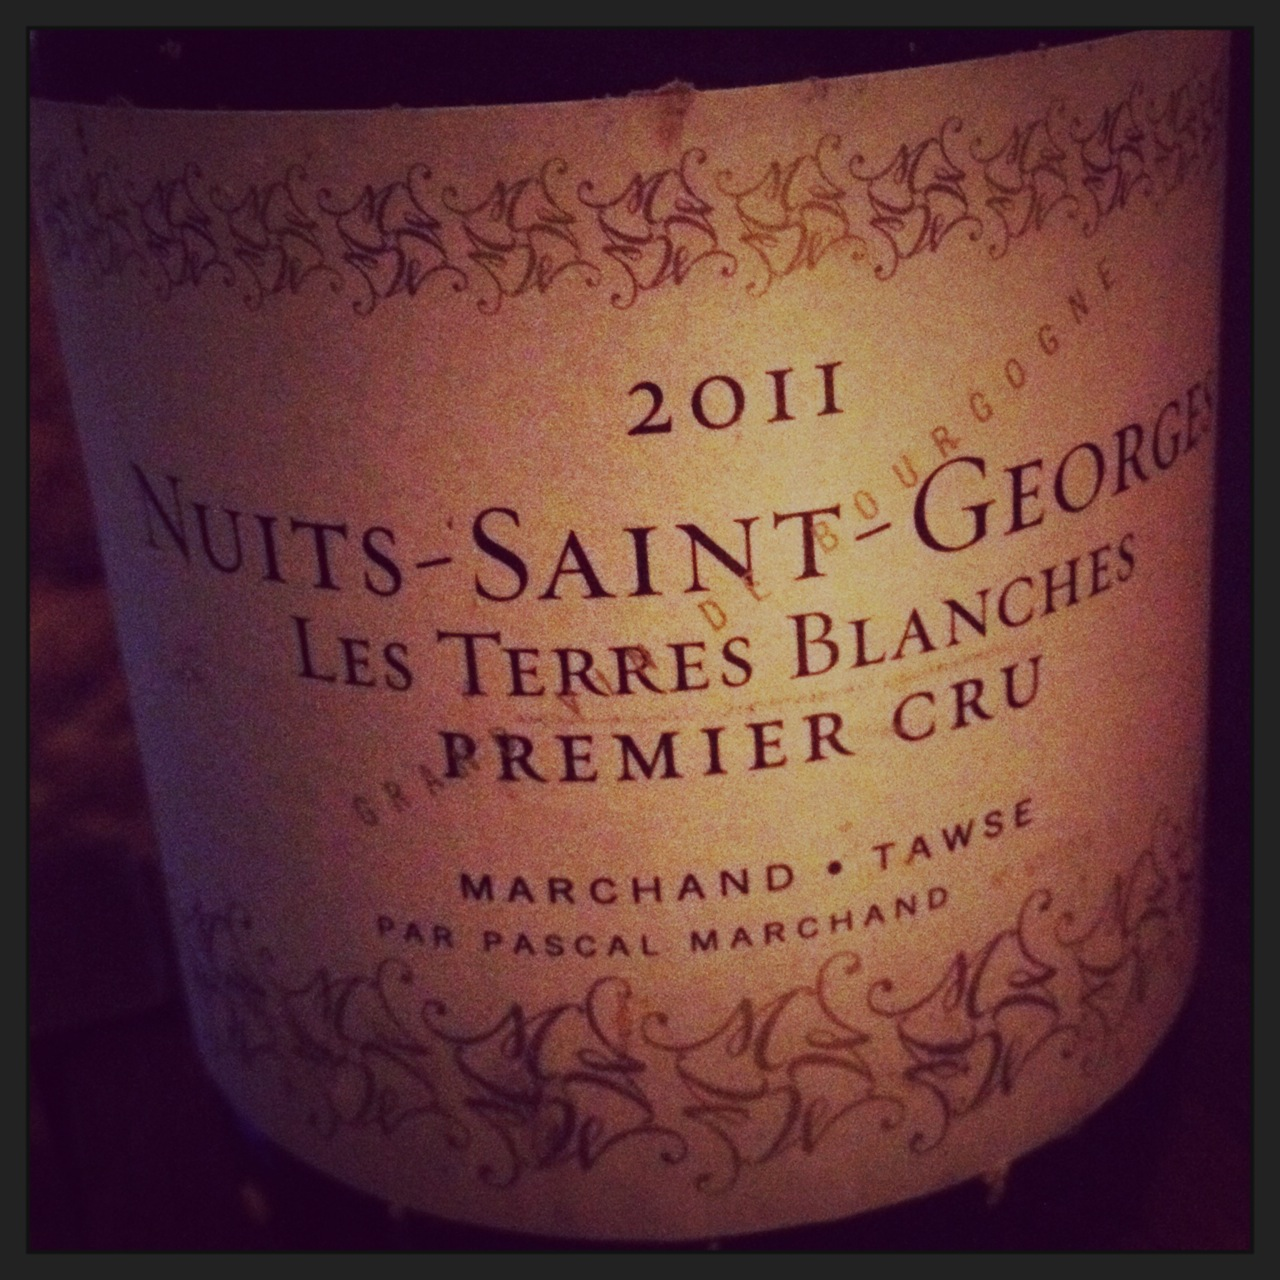 Nuits-Saint-Georges Les Terres Blanches 2011 by Marchand Tawse